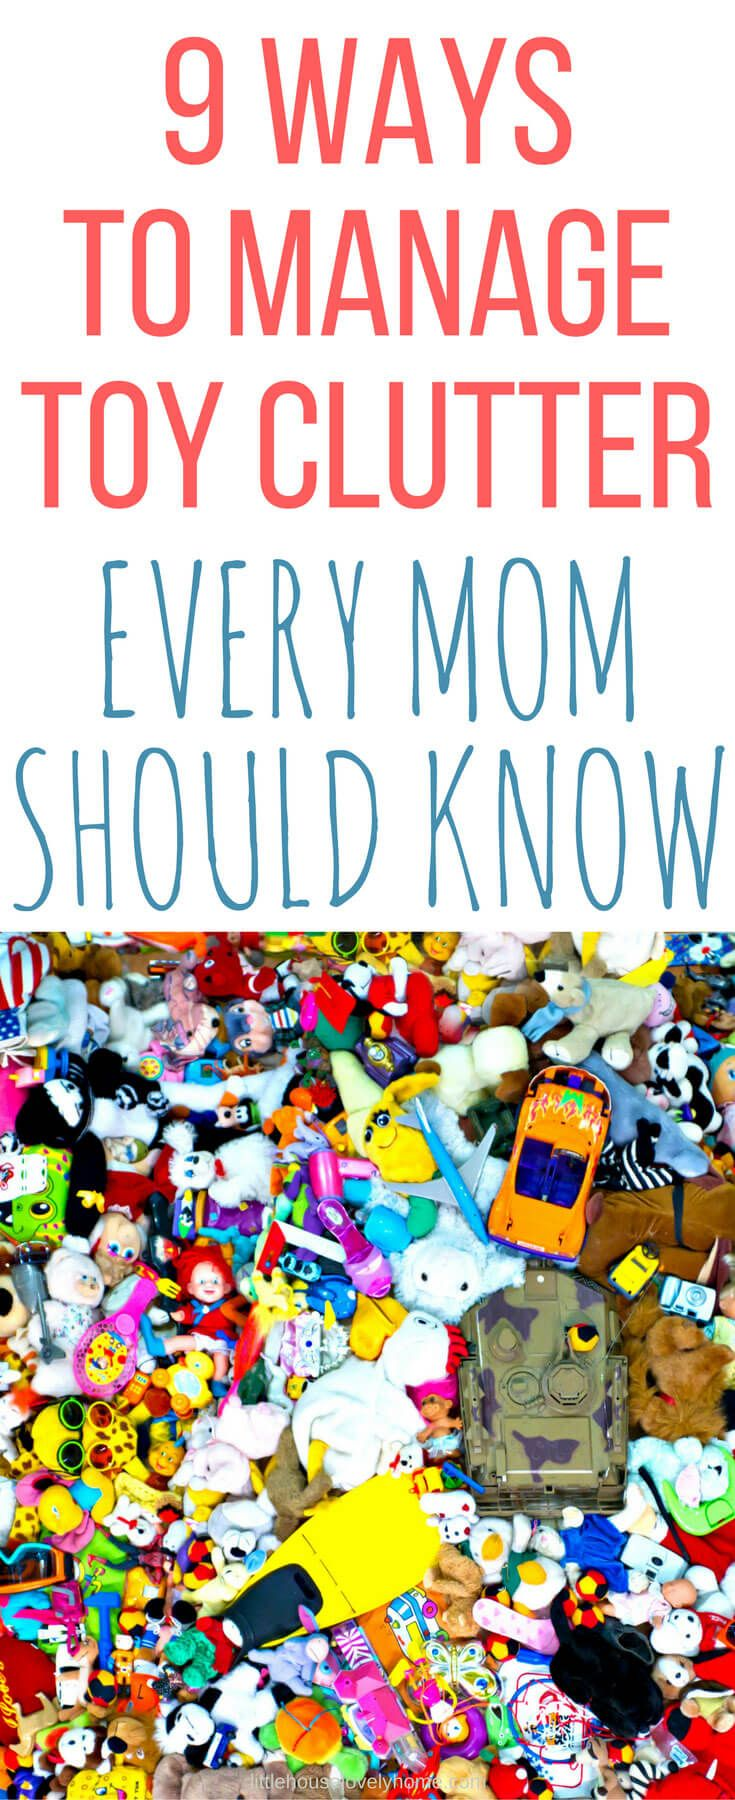 You don't have to choose between toys and your sanity anymore. These tips for dealing with toy clutter will help you get the crazy under control and give you and your kids the space you need to enjoy life.